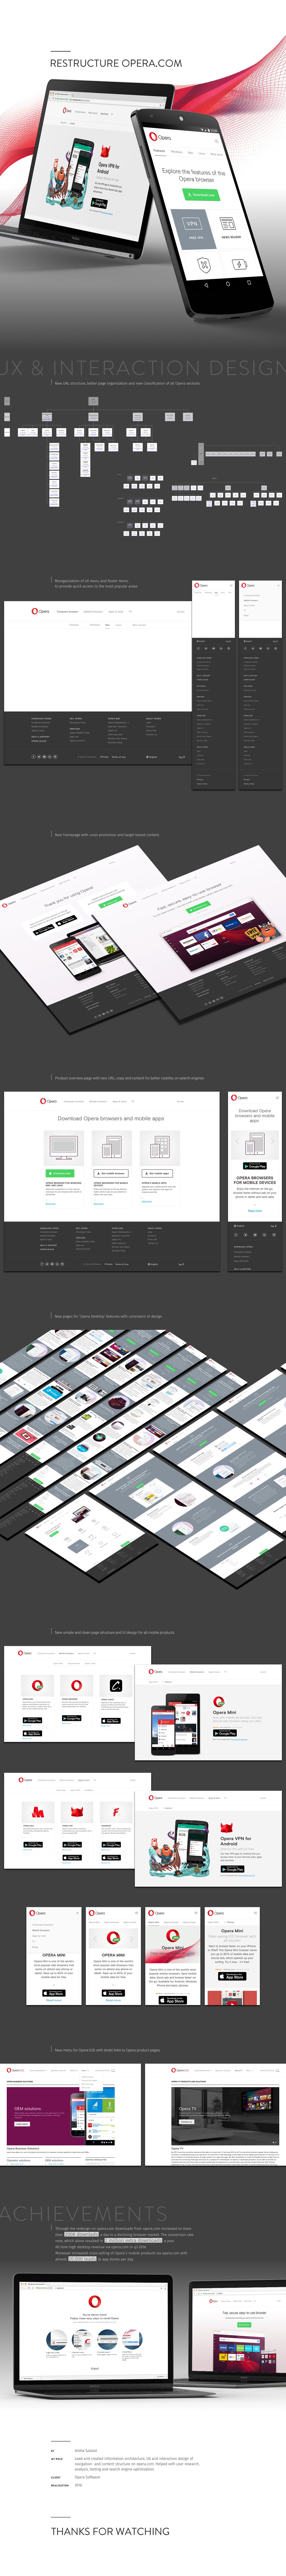 redesign restructure ux uxdesign UI Interaction design  navigation SEO User research Analysis